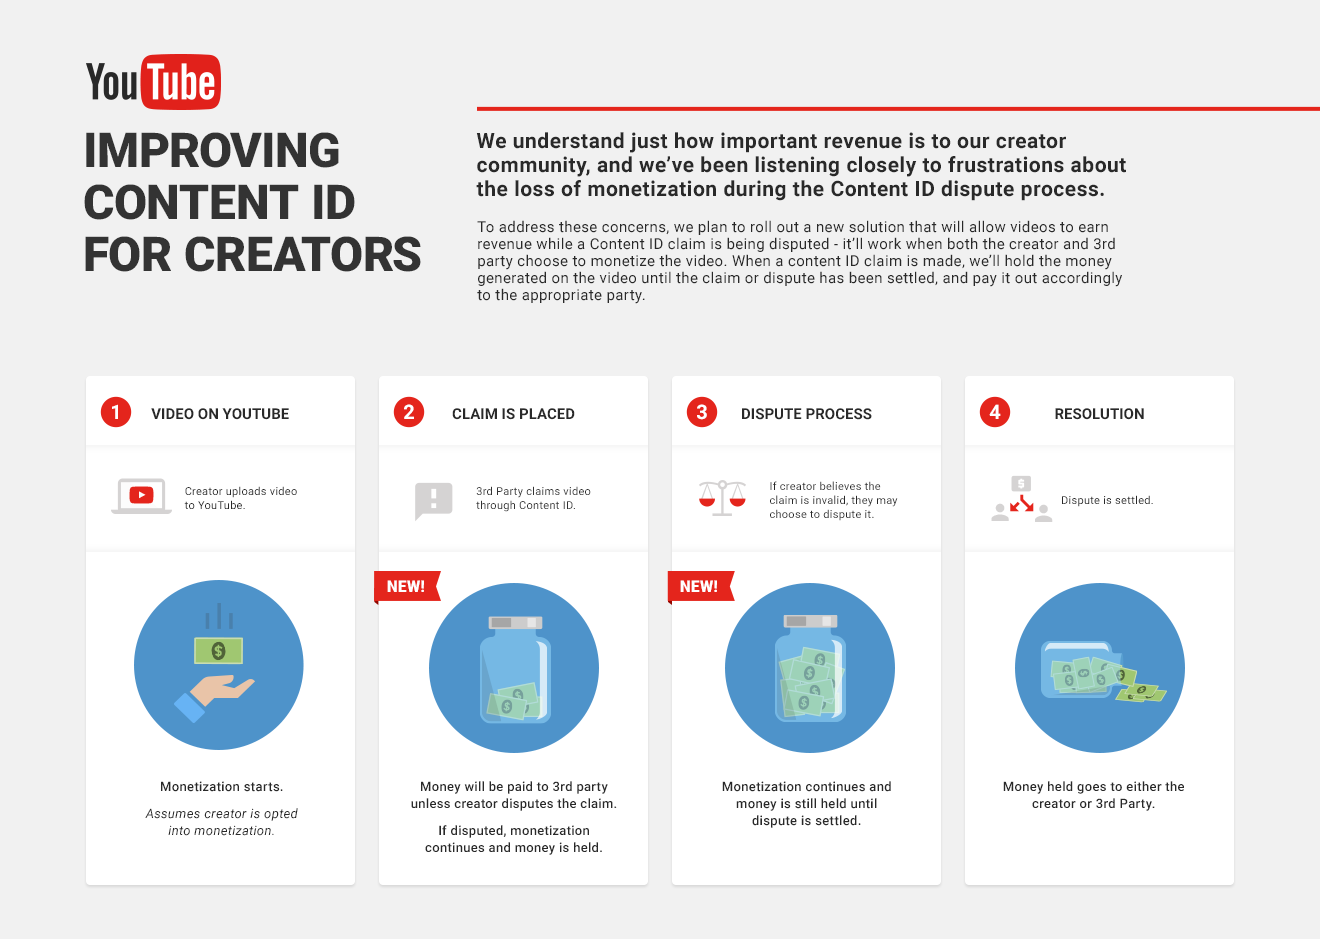 YouTube Improves Content ID To Help Keep Creators From Losing Money